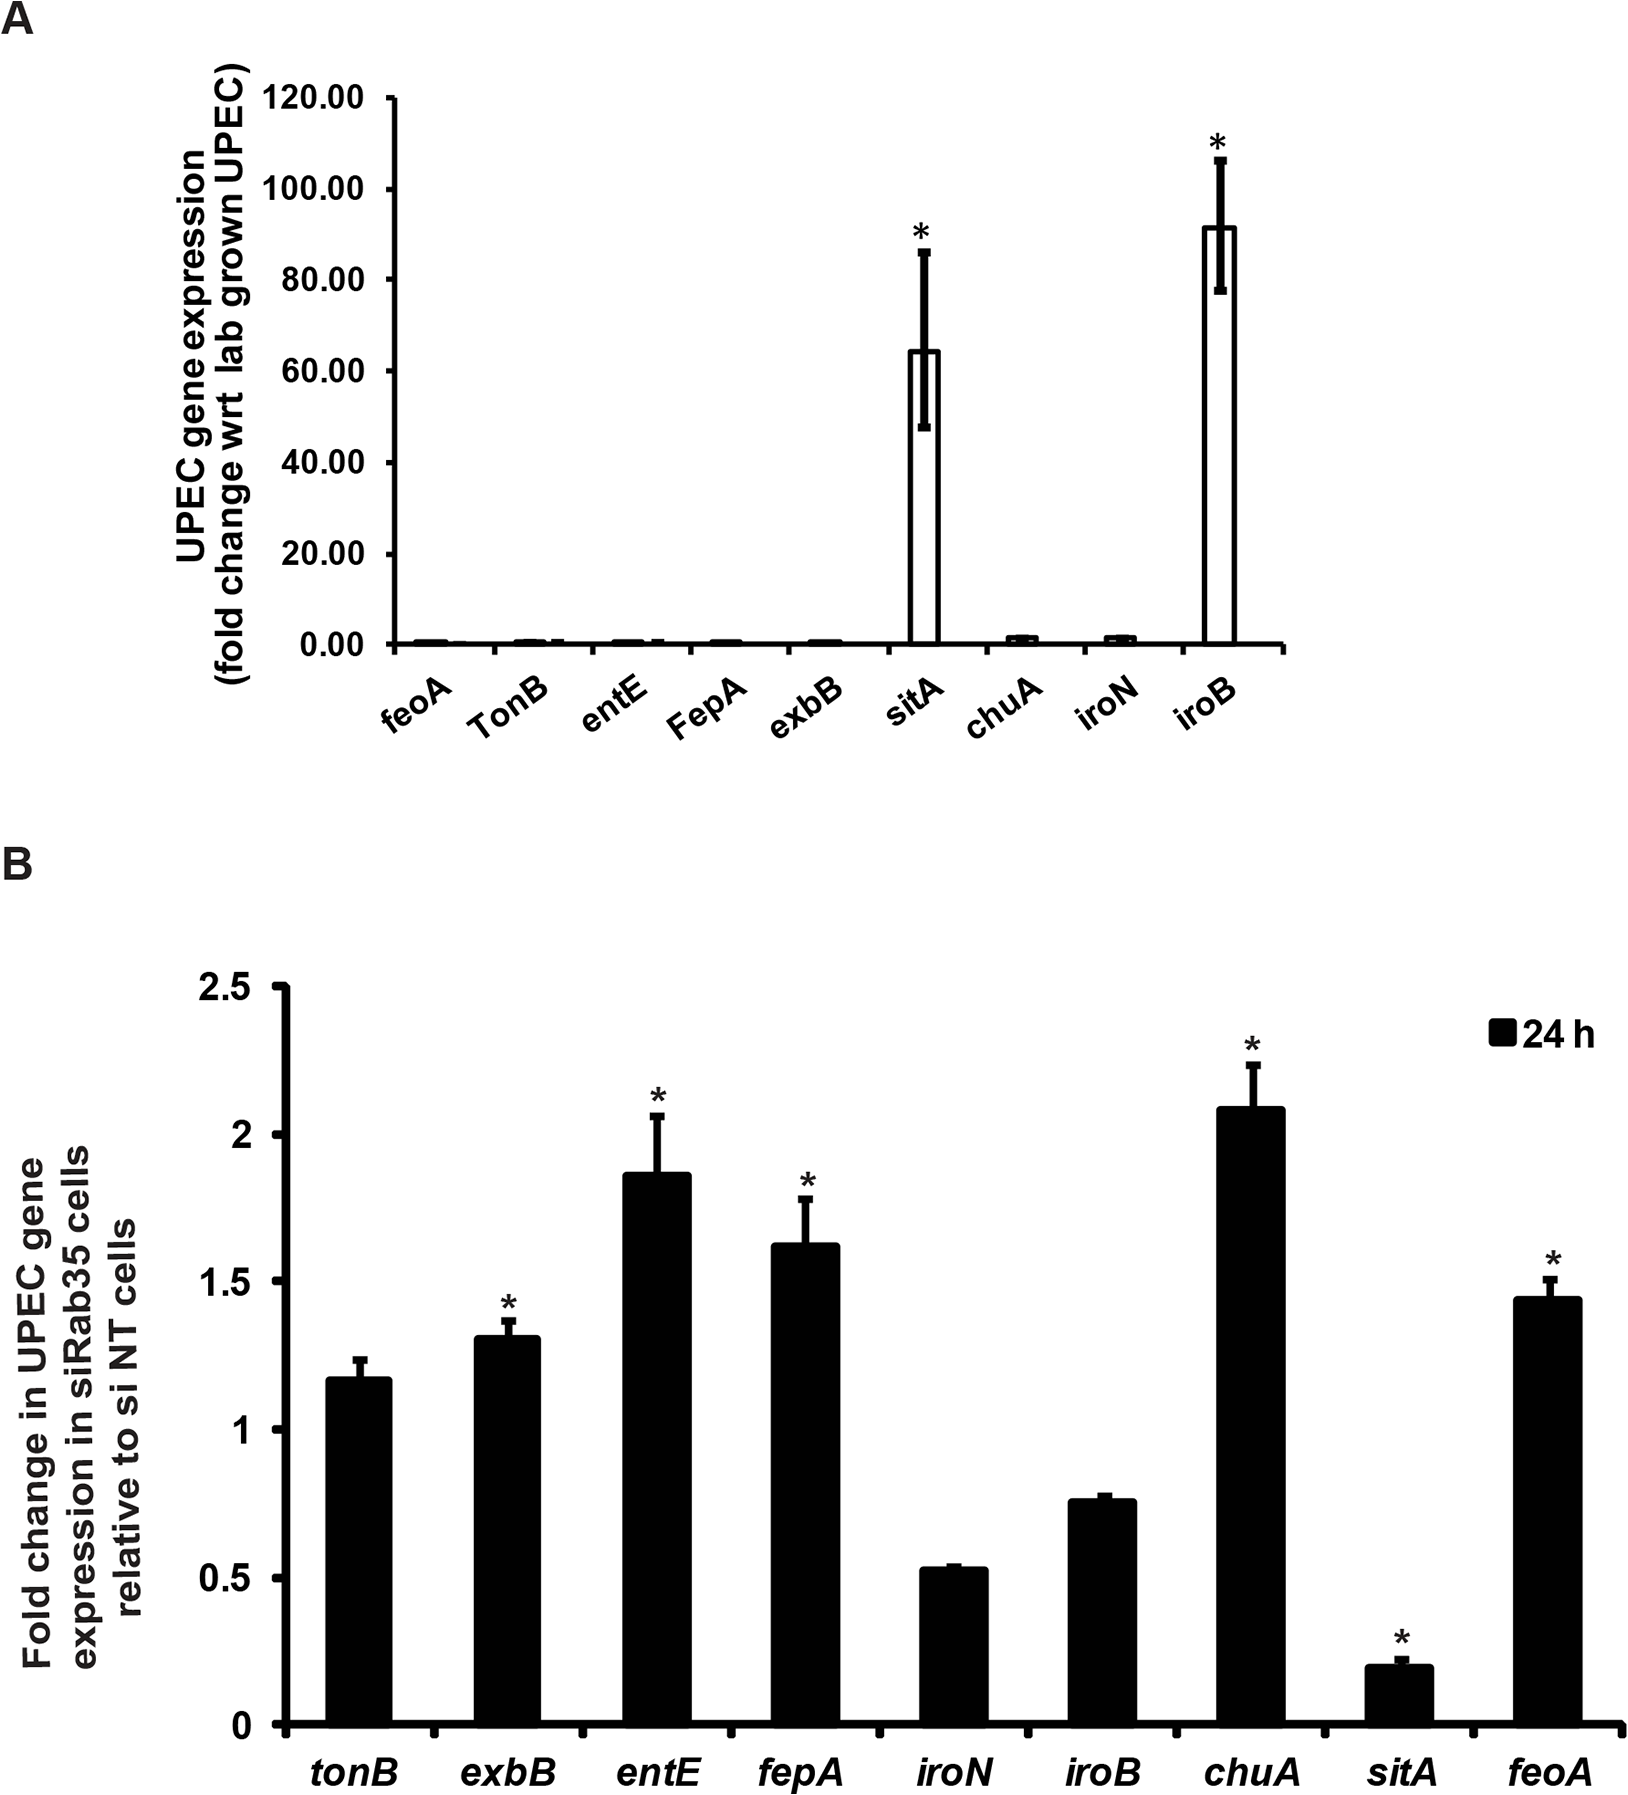 (A) and (B) Genes involved in iron acquisition are differentially expressed by UPEC in the absence of Rab35.